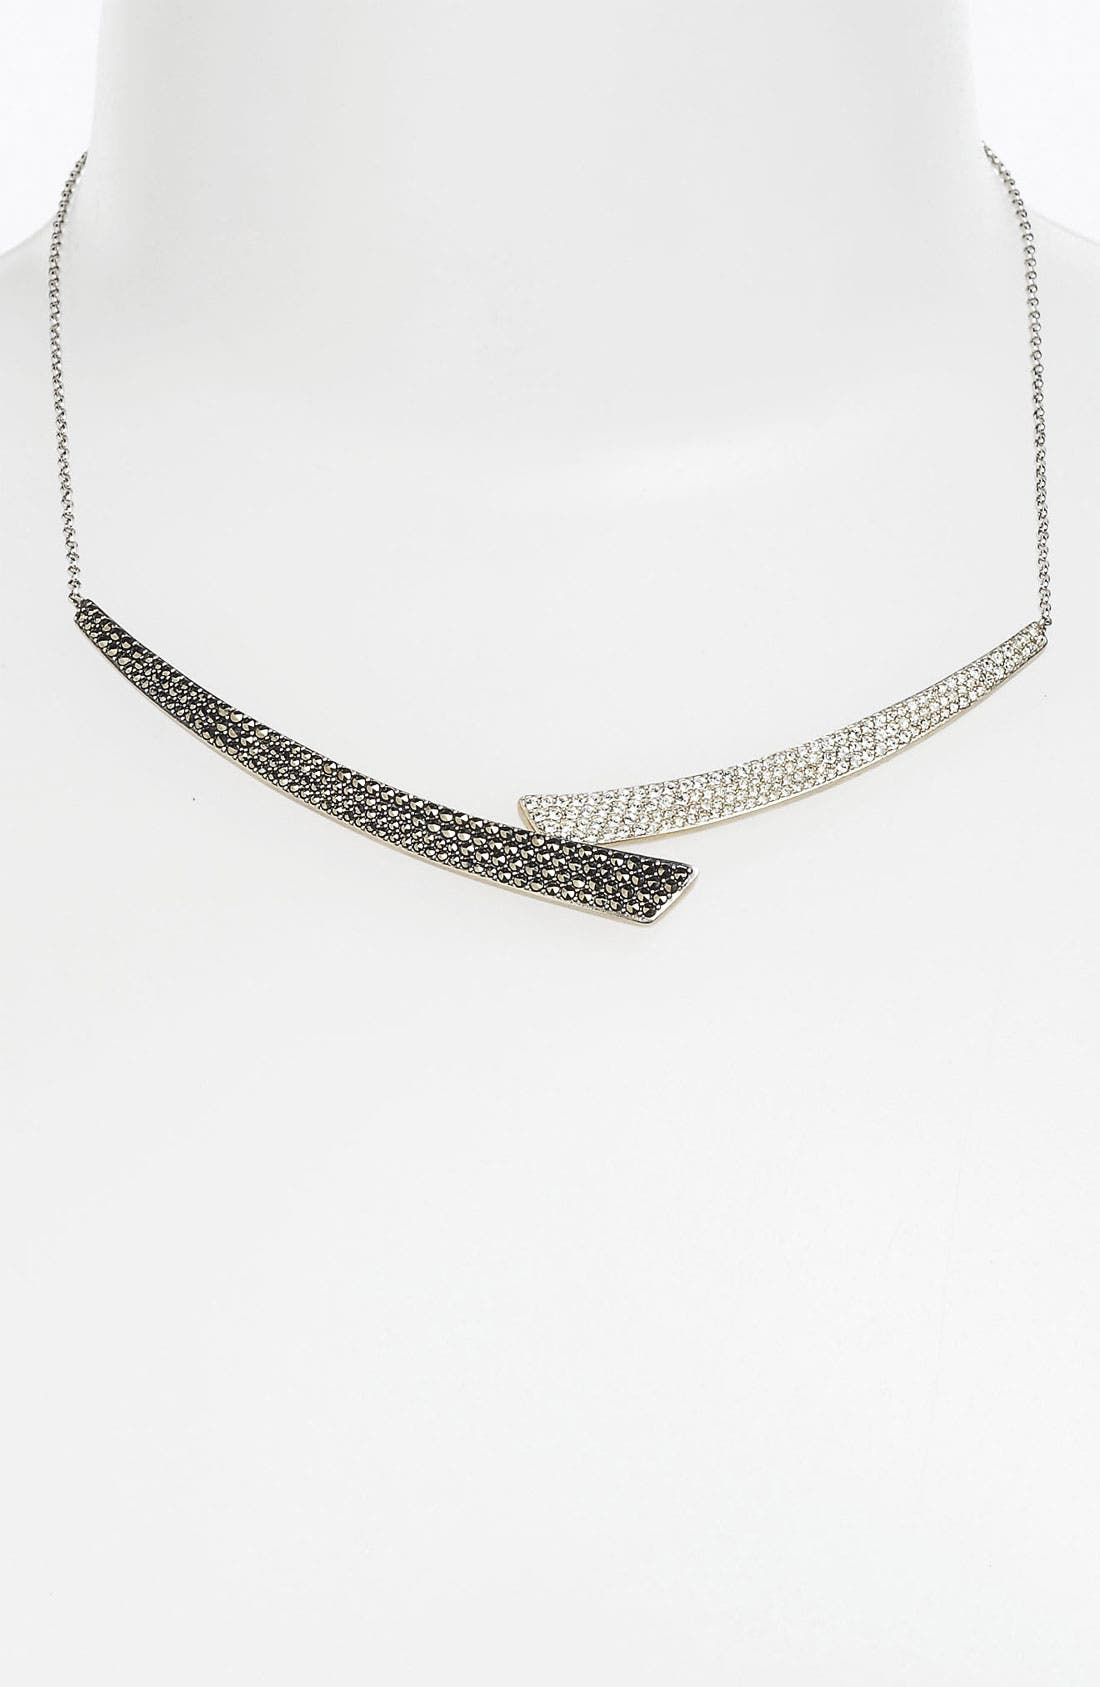 Alternate Image 1 Selected - Judith Jack 'Crystal Glitz' Collar Necklace